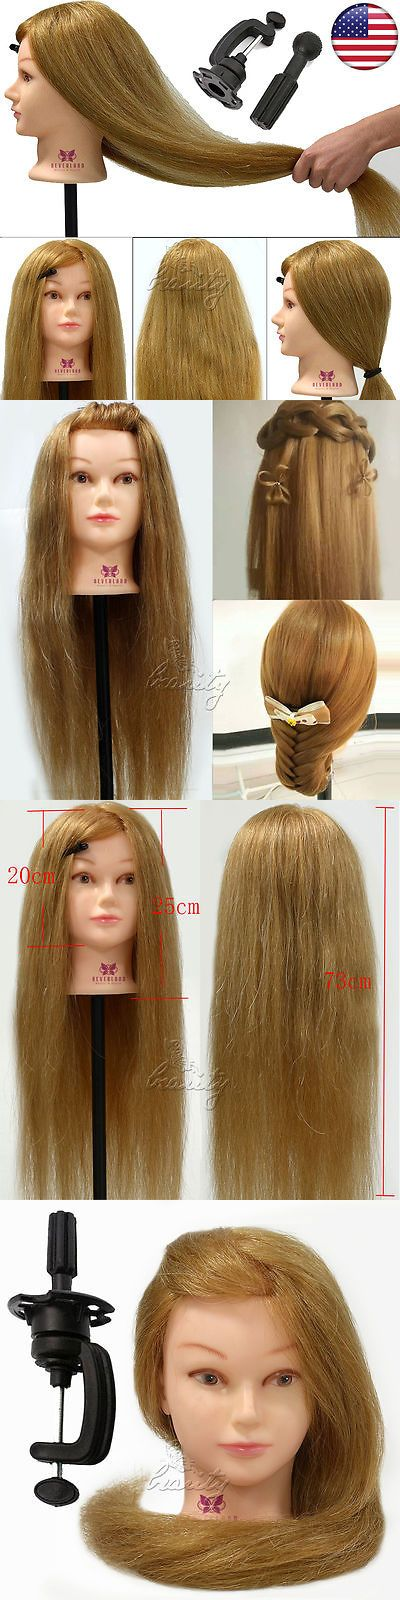 Other Salon and Spa Equipment: Cosmetology Training Head,100% Real Human Hair, 26 Long Hairdressing Mannequin -> BUY IT NOW ONLY: $38.99 on eBay!